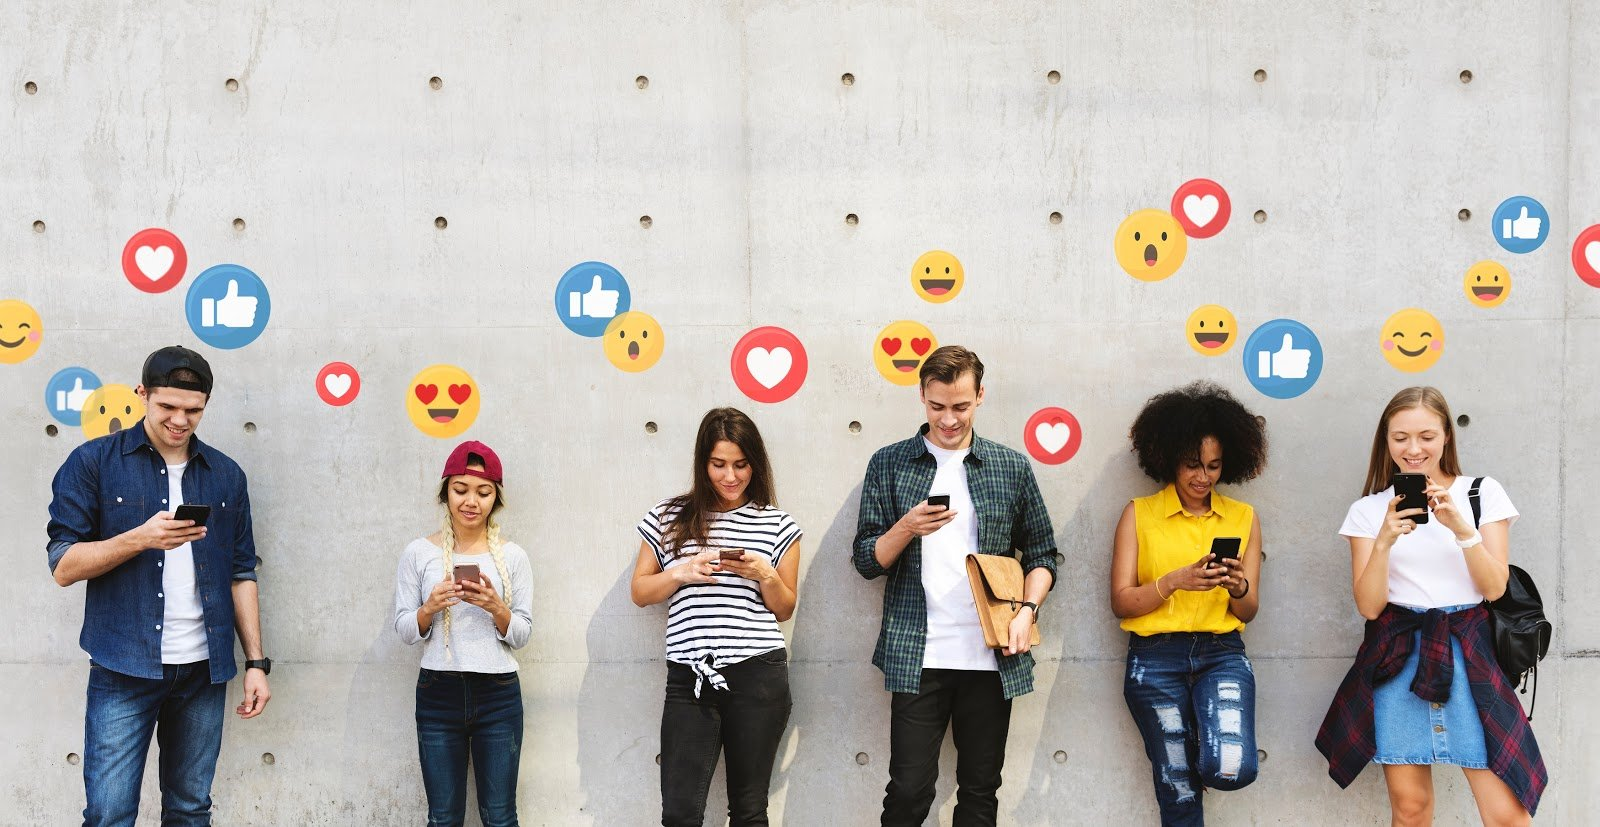 People lean against a wall using their phones with emojis floating above their heads.